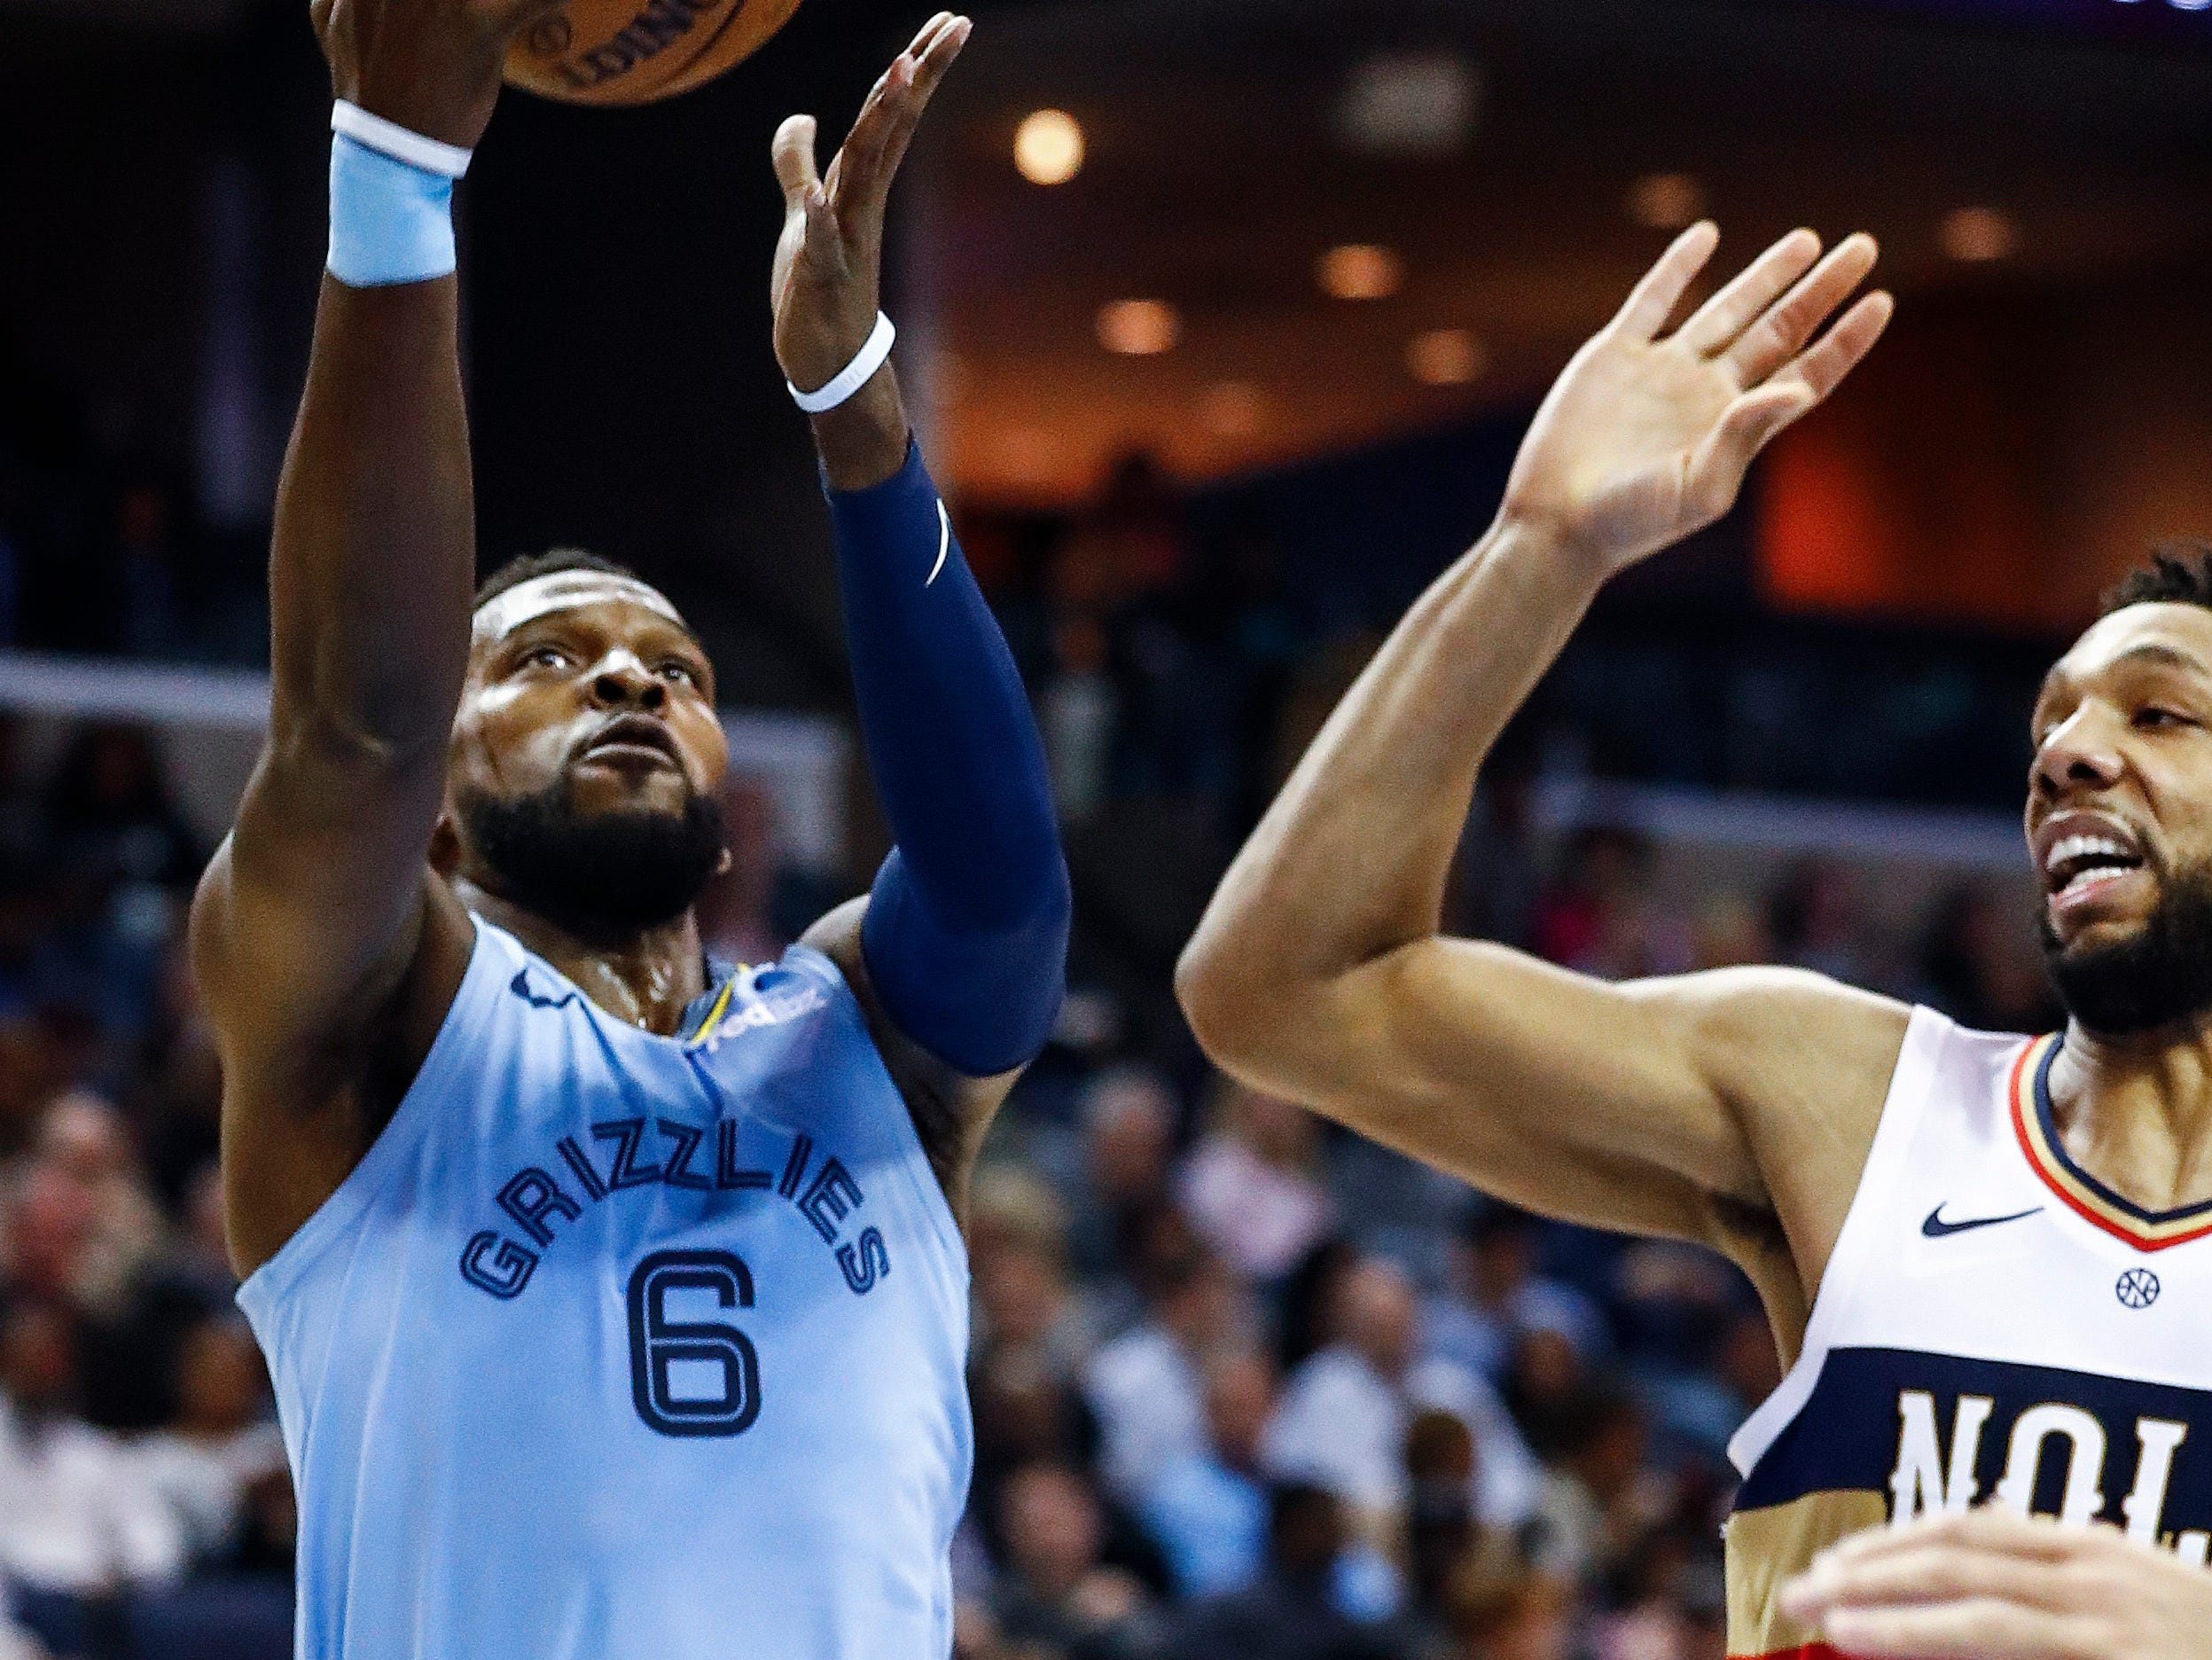 Memphis Grizzlies guard Shelvin Mack (left) drives for a layup against New Orleans Pelicans defender Jahlil Okafor (right) during action at the FedExForum in Memphis, Tenn., Monday, January 21, 2019.